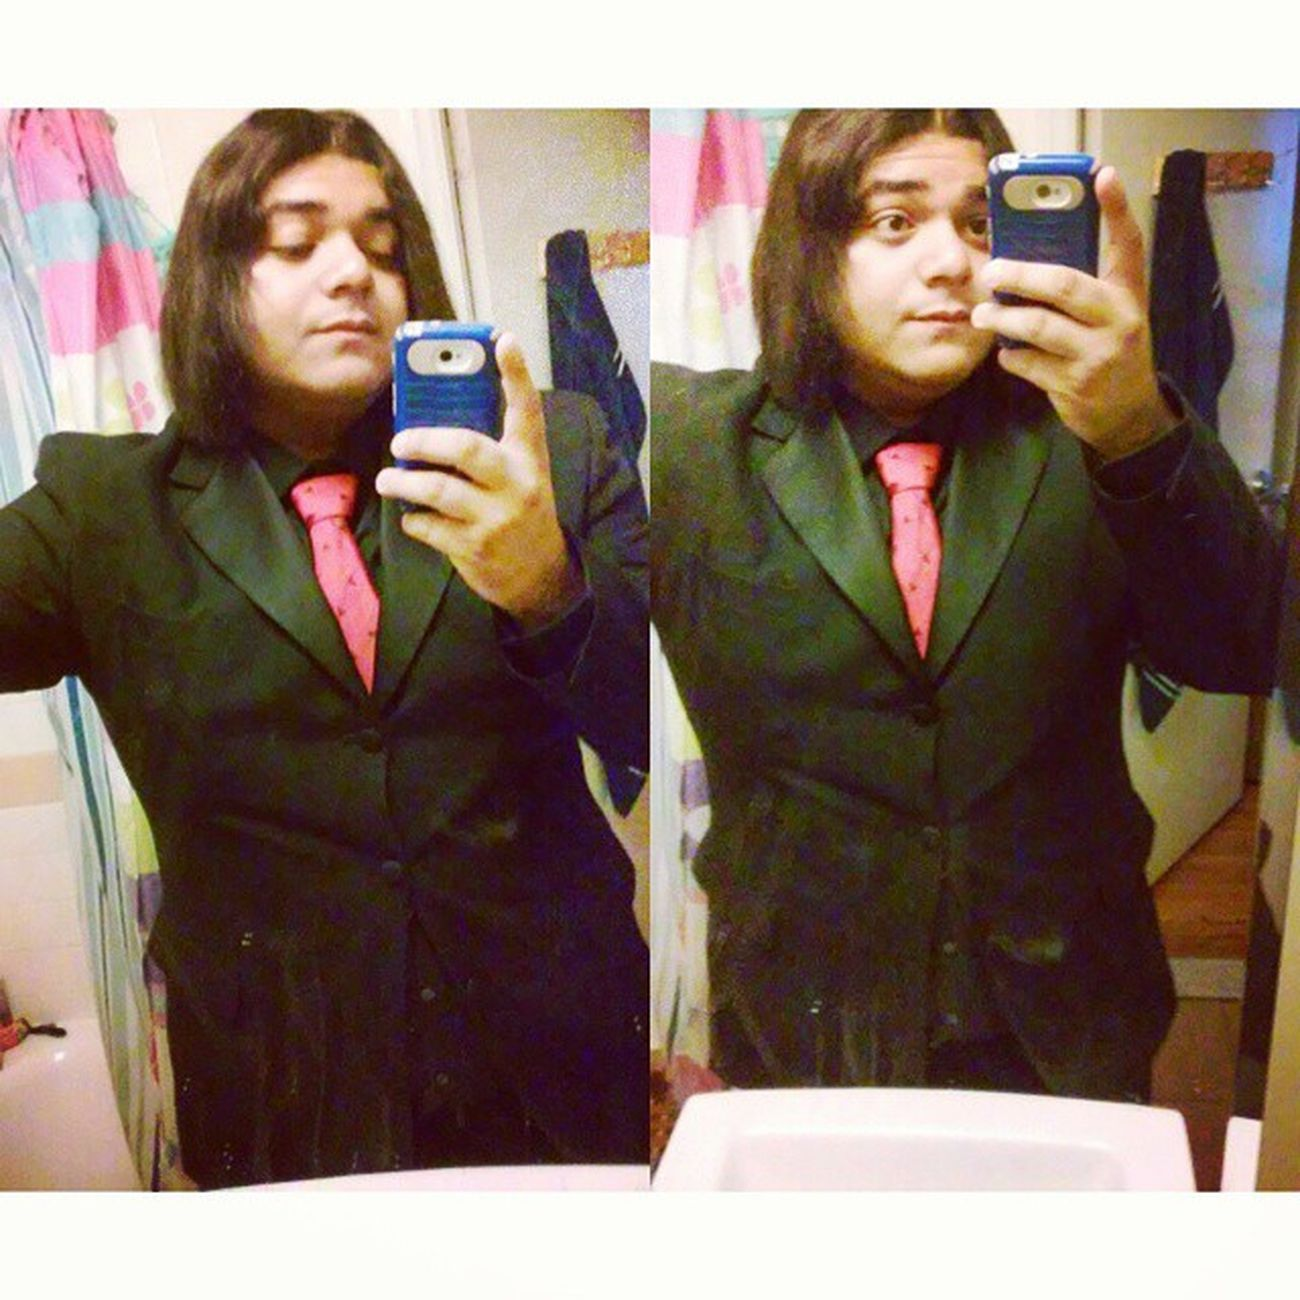 Today dressed up for graduation tried my best lol Graduation 2015  Fordhamarts Greatday Selfie Tryingtobesexy Professional Suite Friday Nerd Celebration Actingcool Fancy Highschool Finallyover